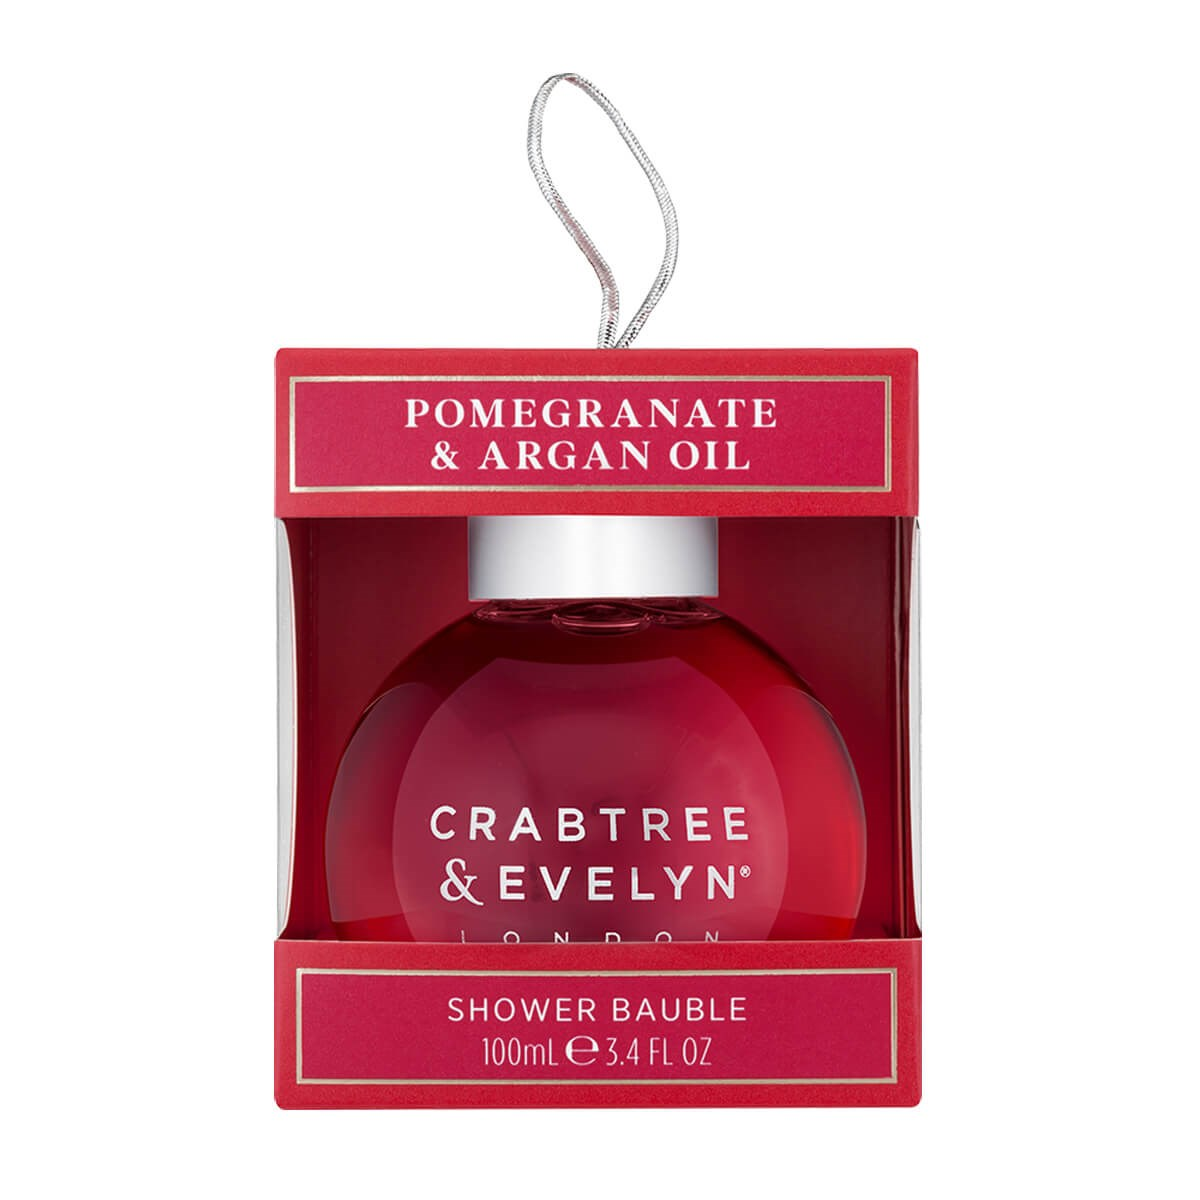 Crabtree & Evelyn Pomegranate & Argan Oil Shower Bauble